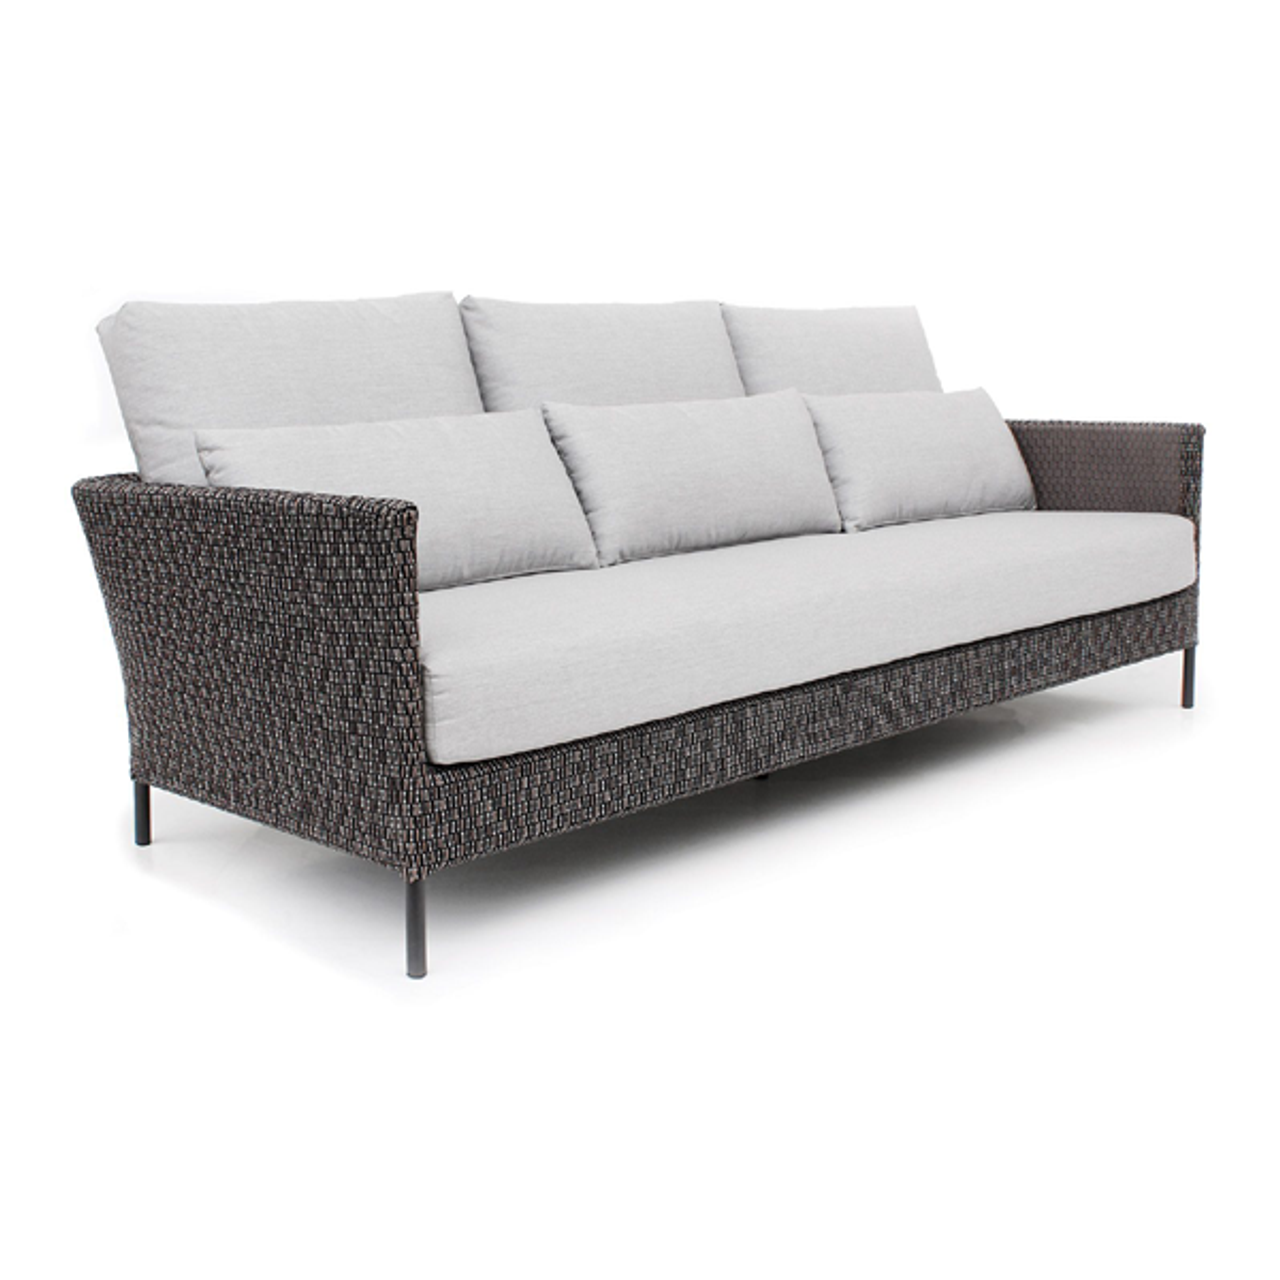 Precision 3 Seater Sofa